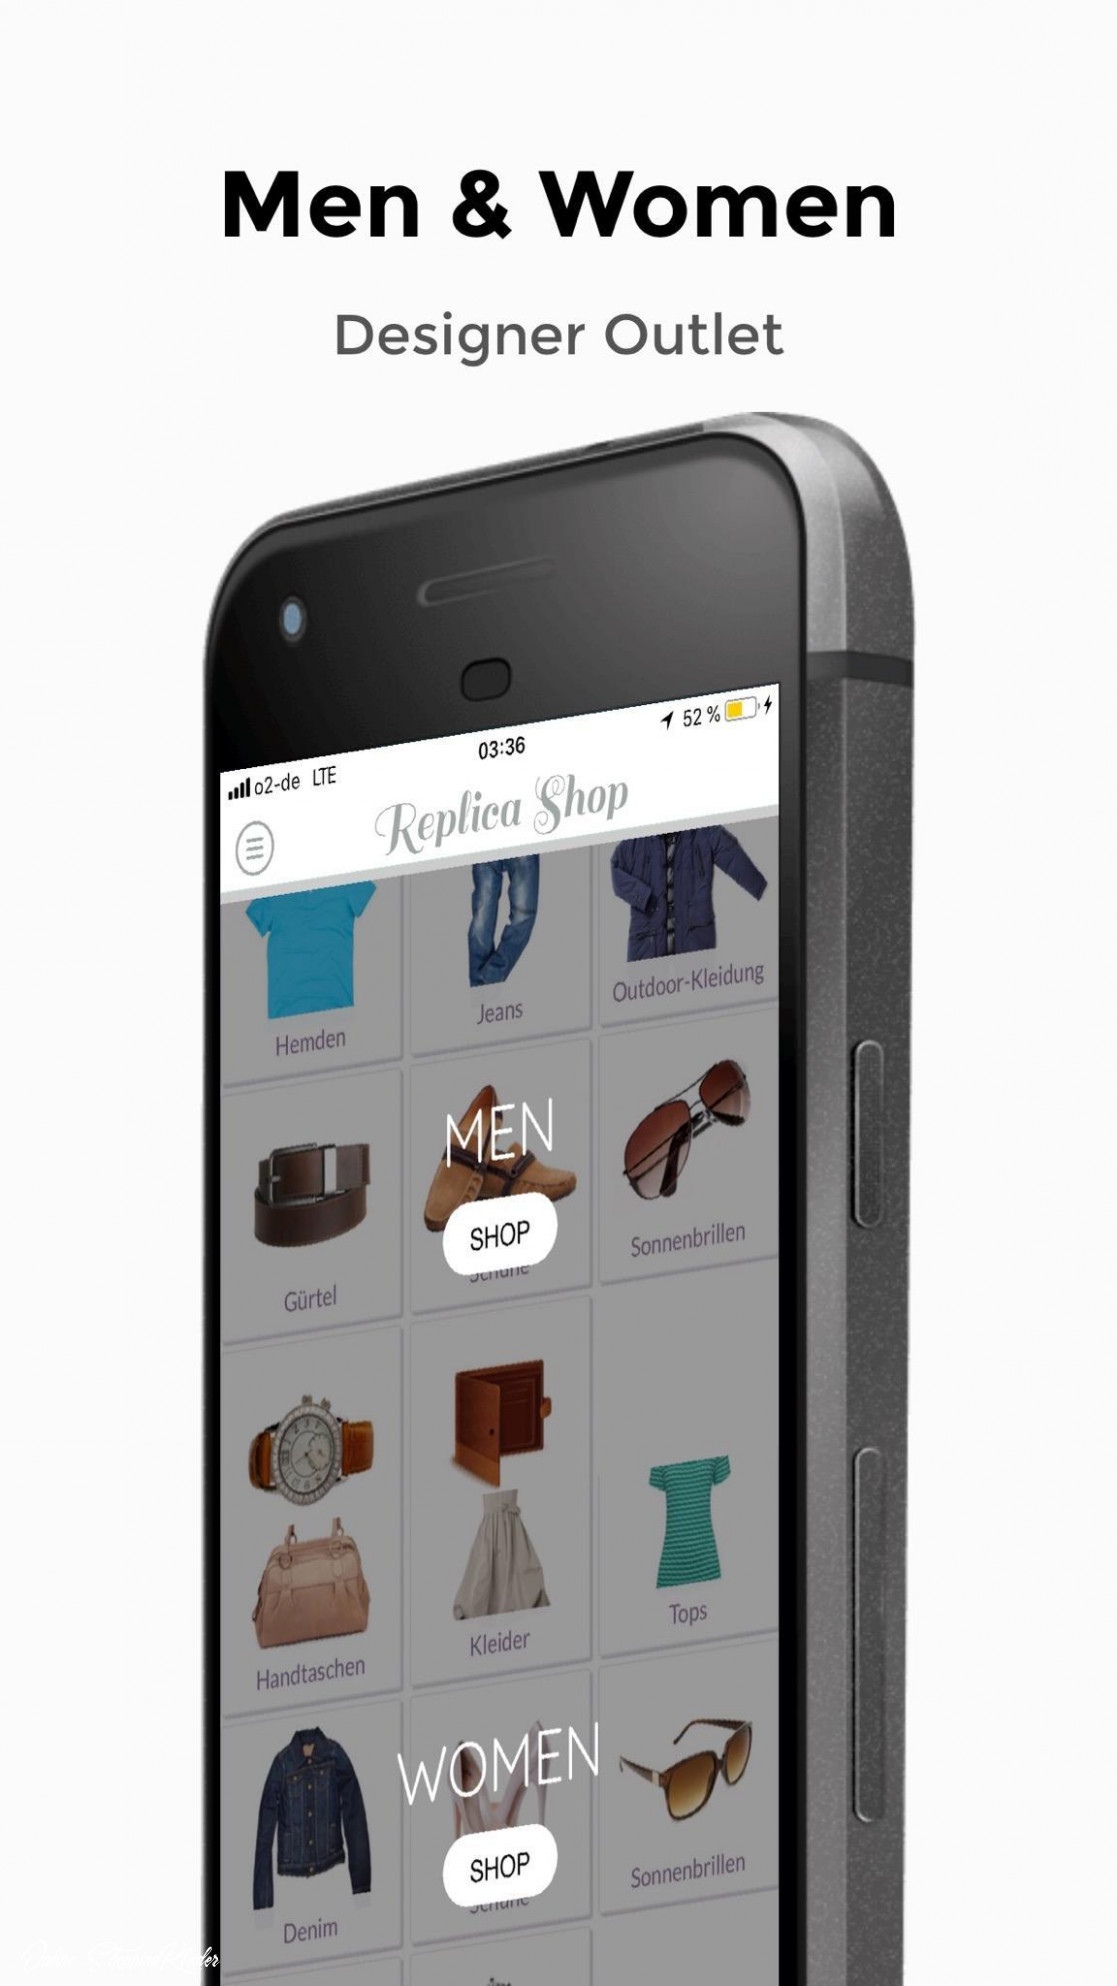 china online shopping replica shop for android apk download